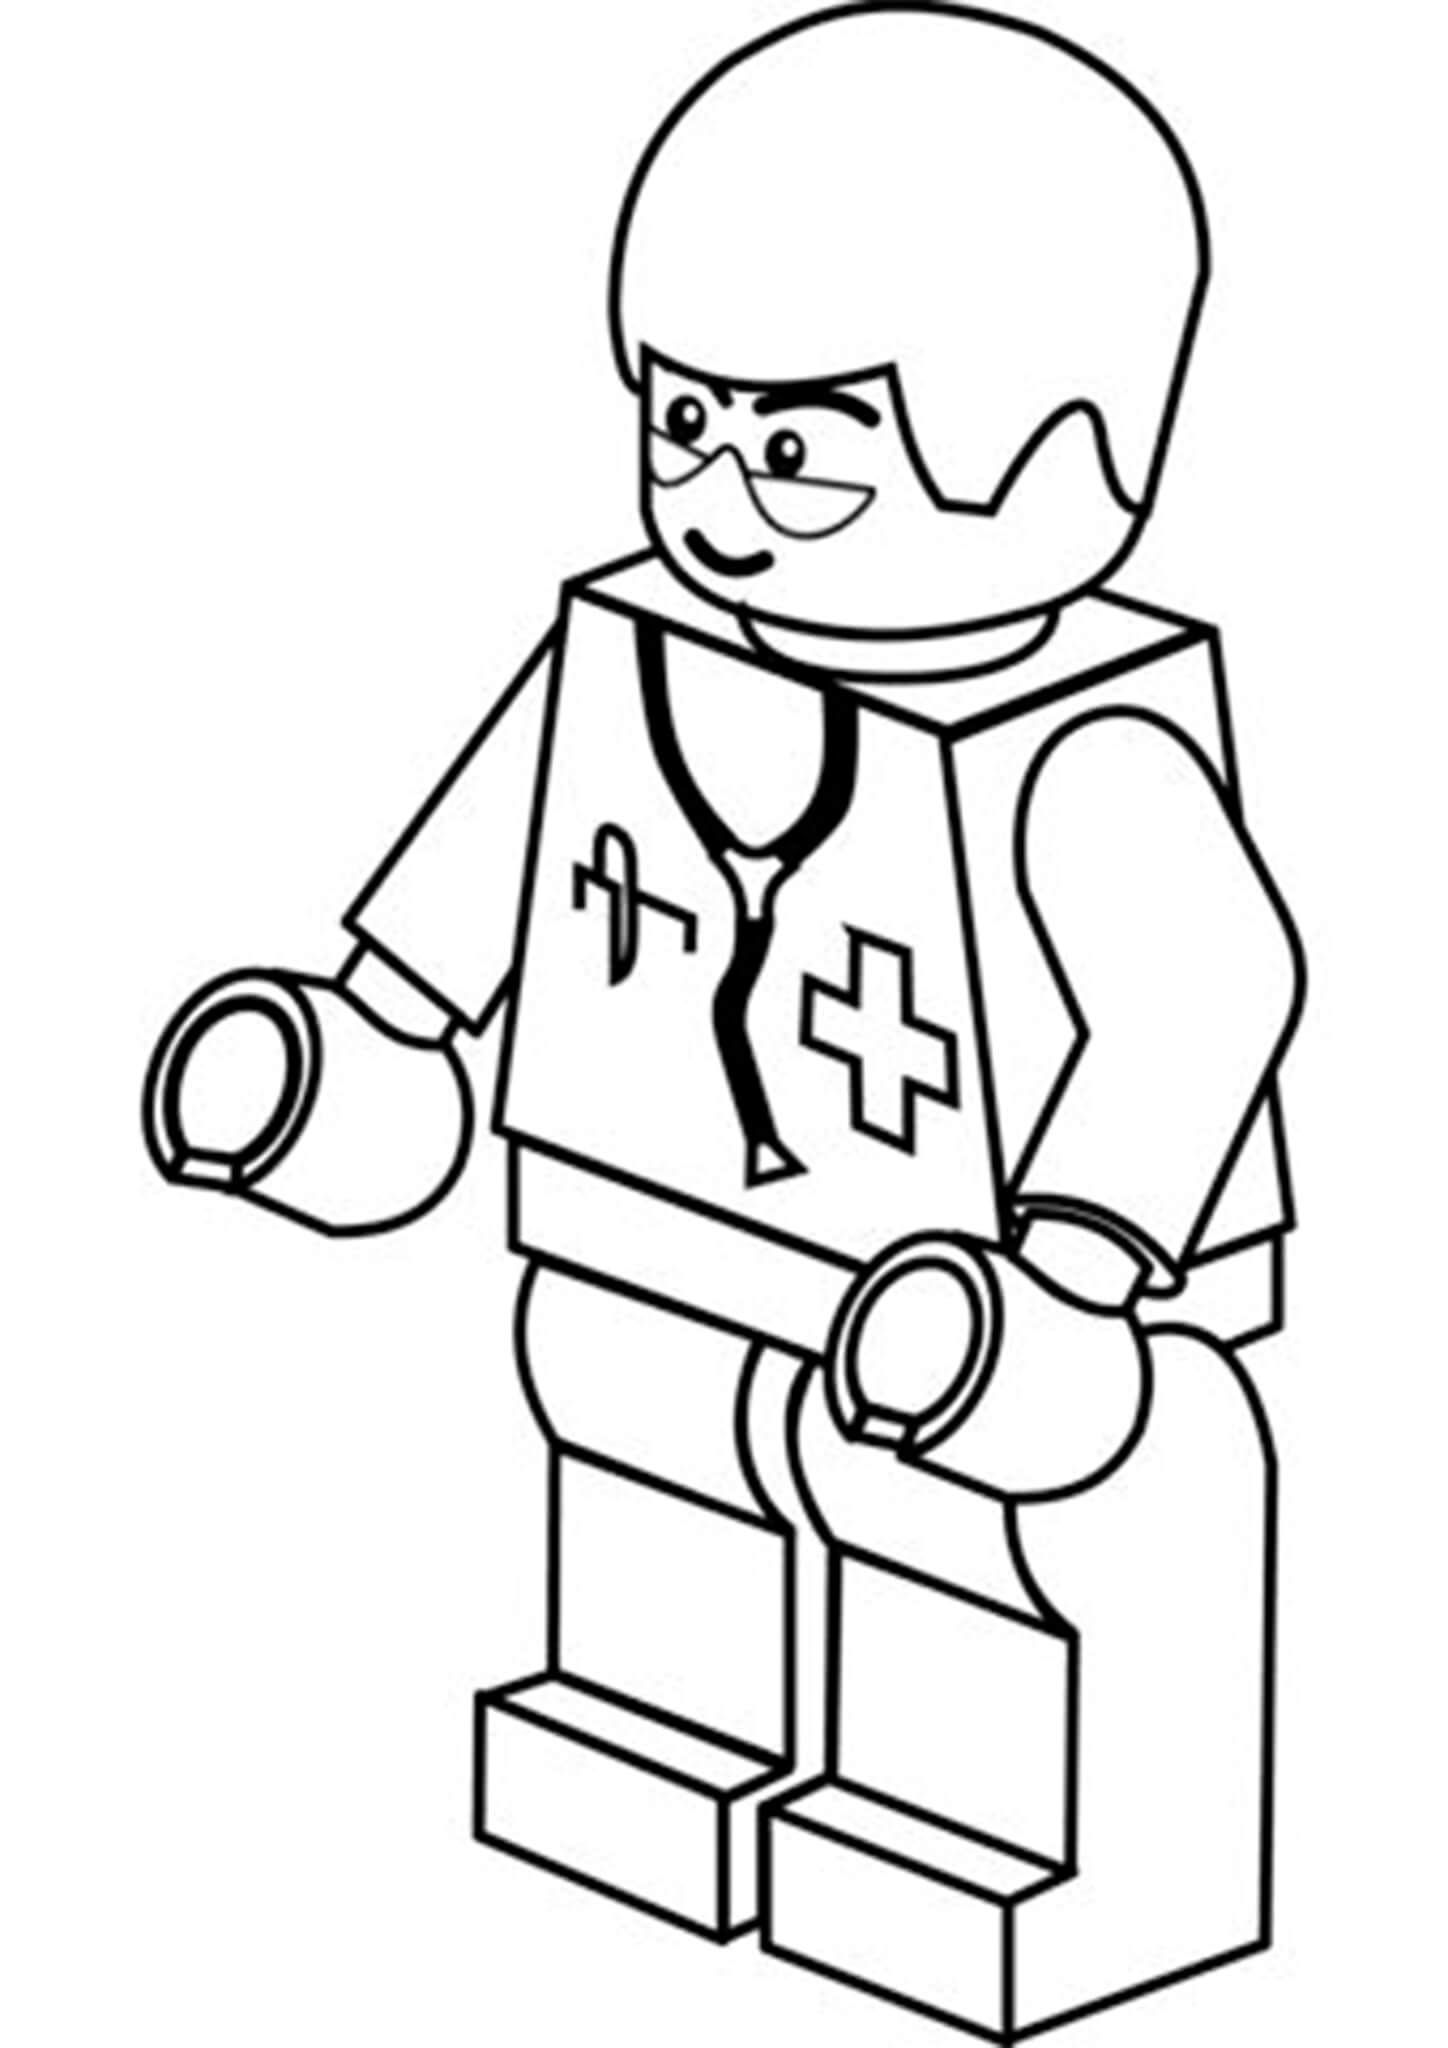 Free Easy To Print Lego Coloring Pages Lego Coloring Lego Coloring Pages Lego Movie Coloring Pages